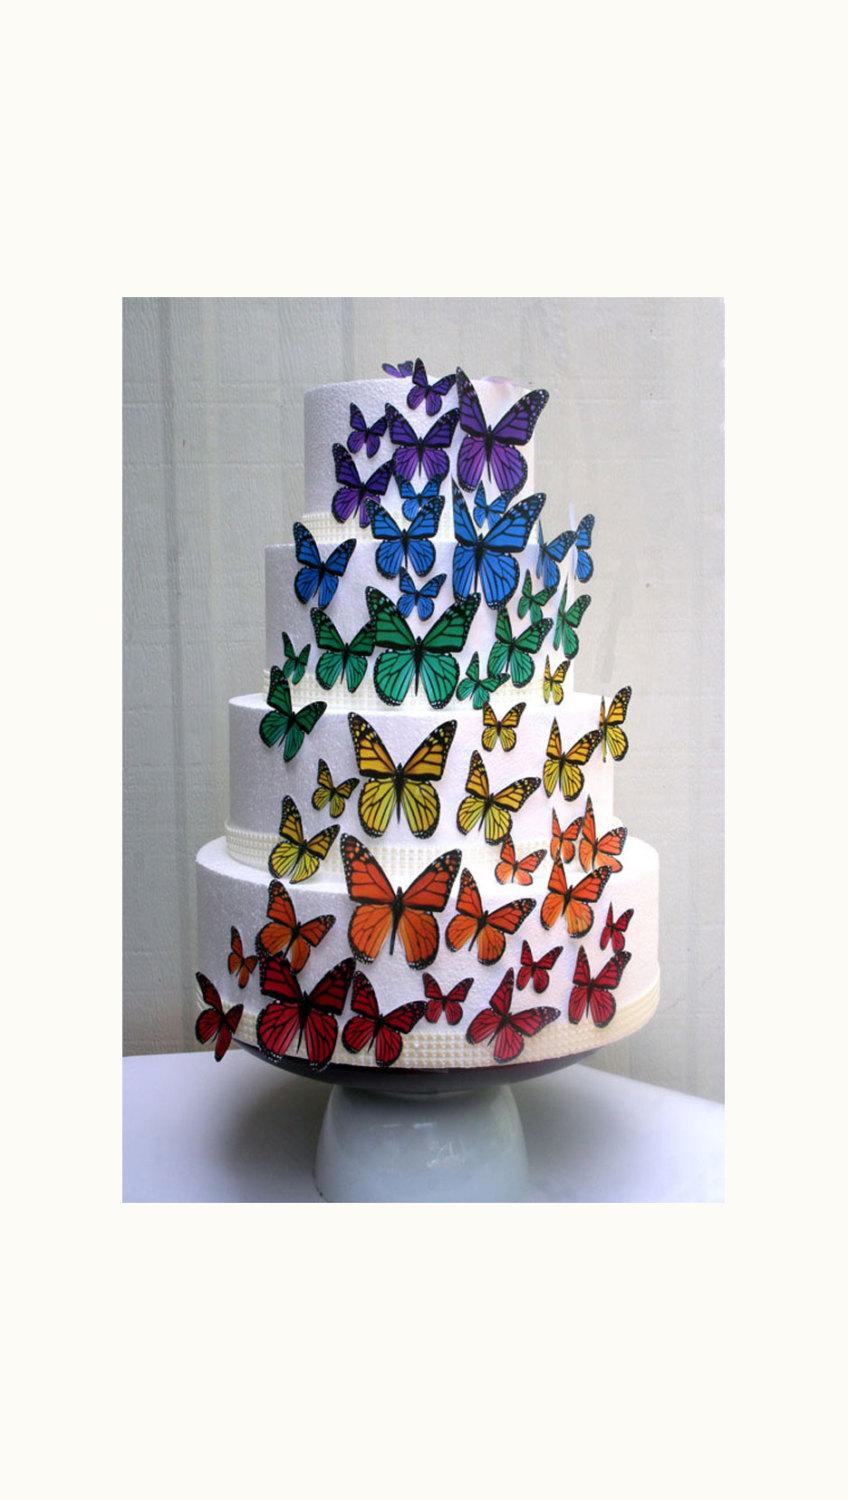 Edible Butterflies Wedding Cake Topper Rainbow Edible Butterflies Set Of 48 DIY Cake Decor